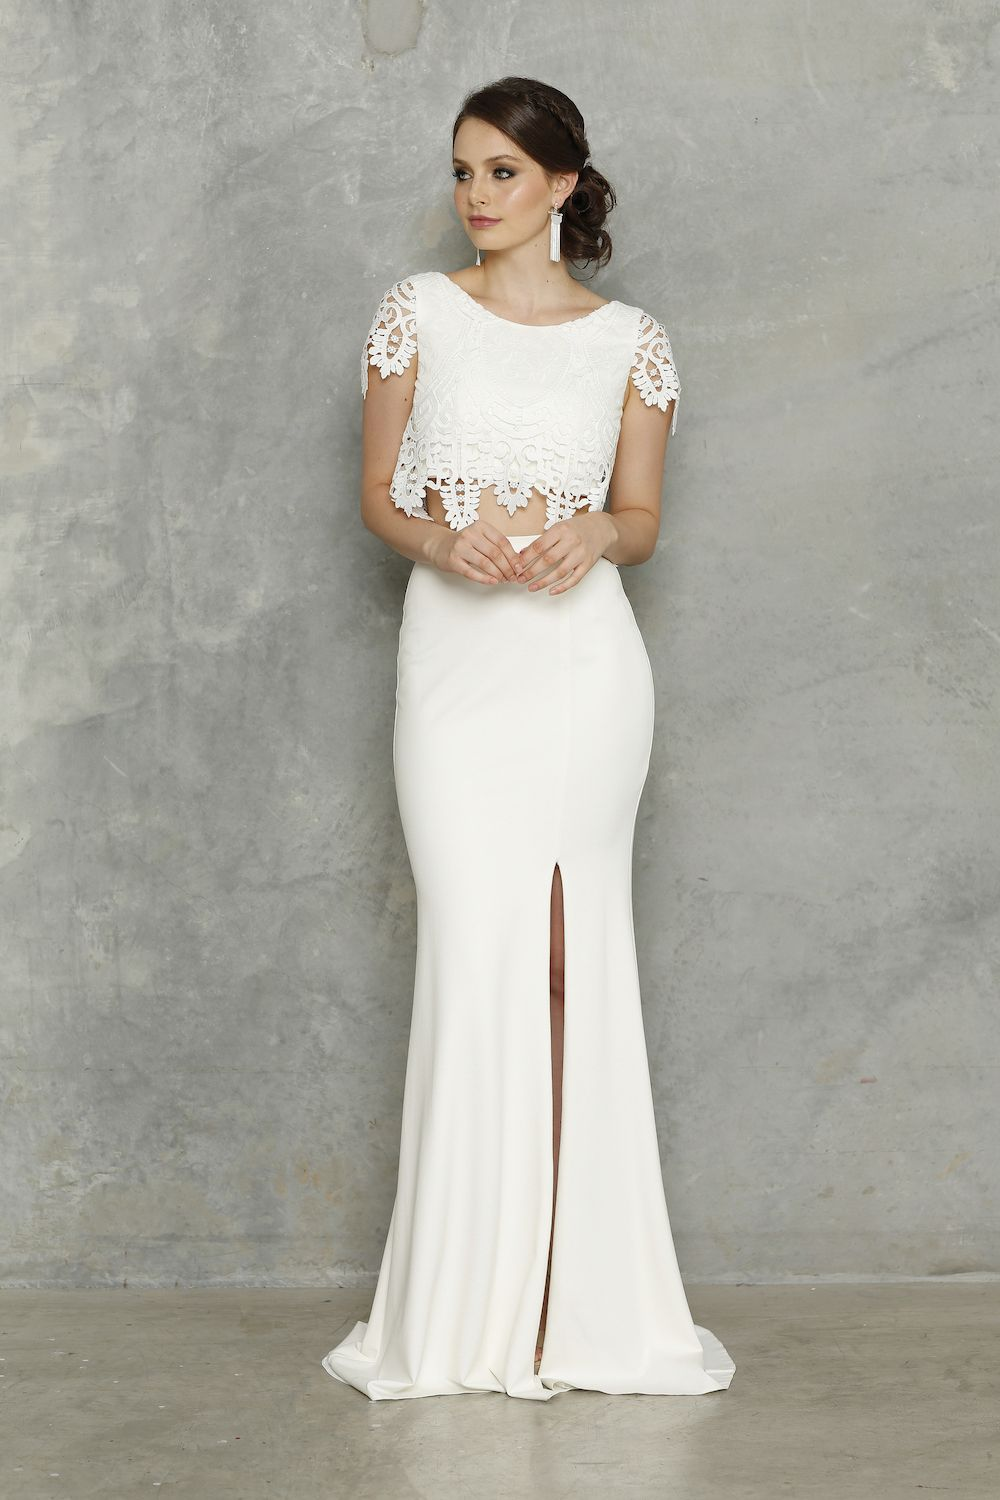 fc26825943c Show off your curves in the Zoe Wedding Dress. This fresh two-piece take